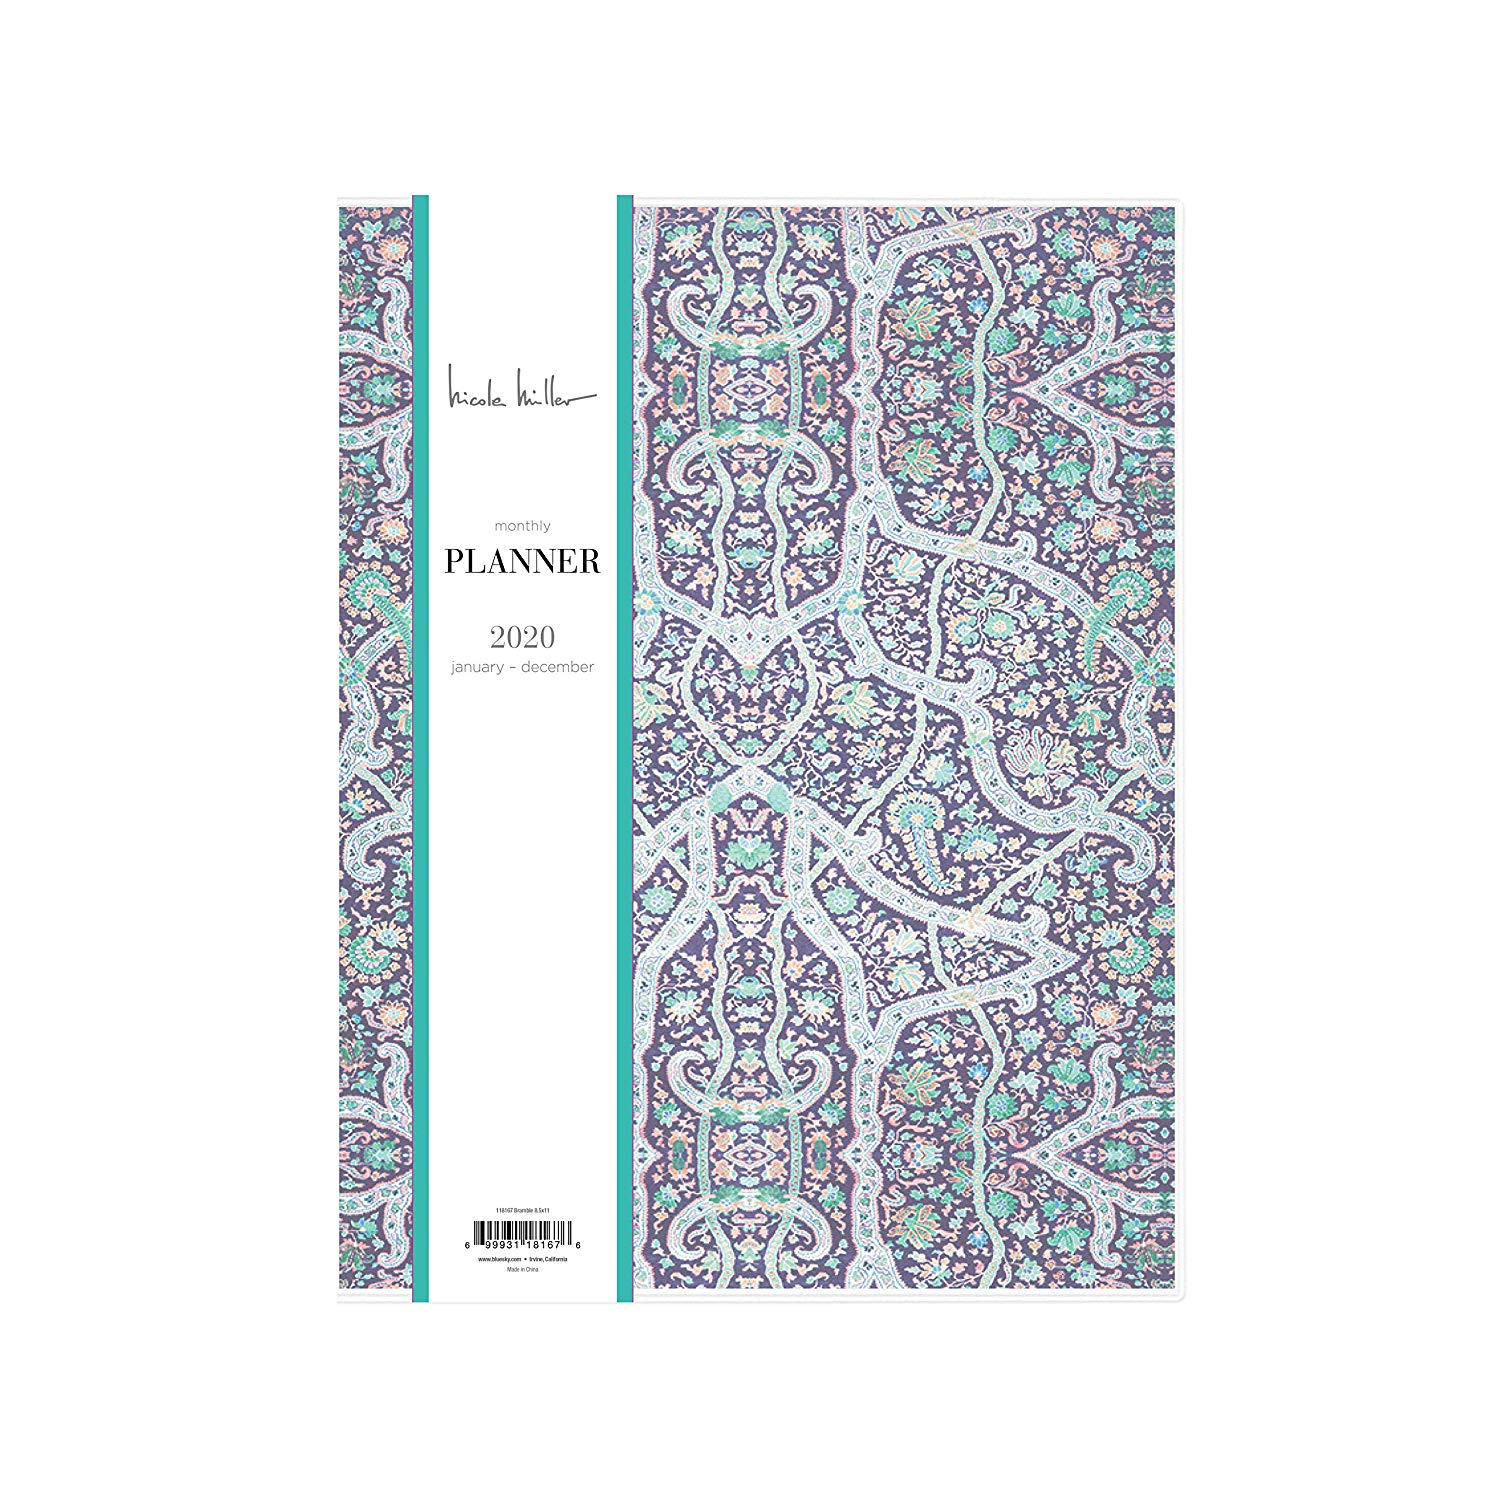 Nicole Miller for Blue Sky 2020 Monthly Planner